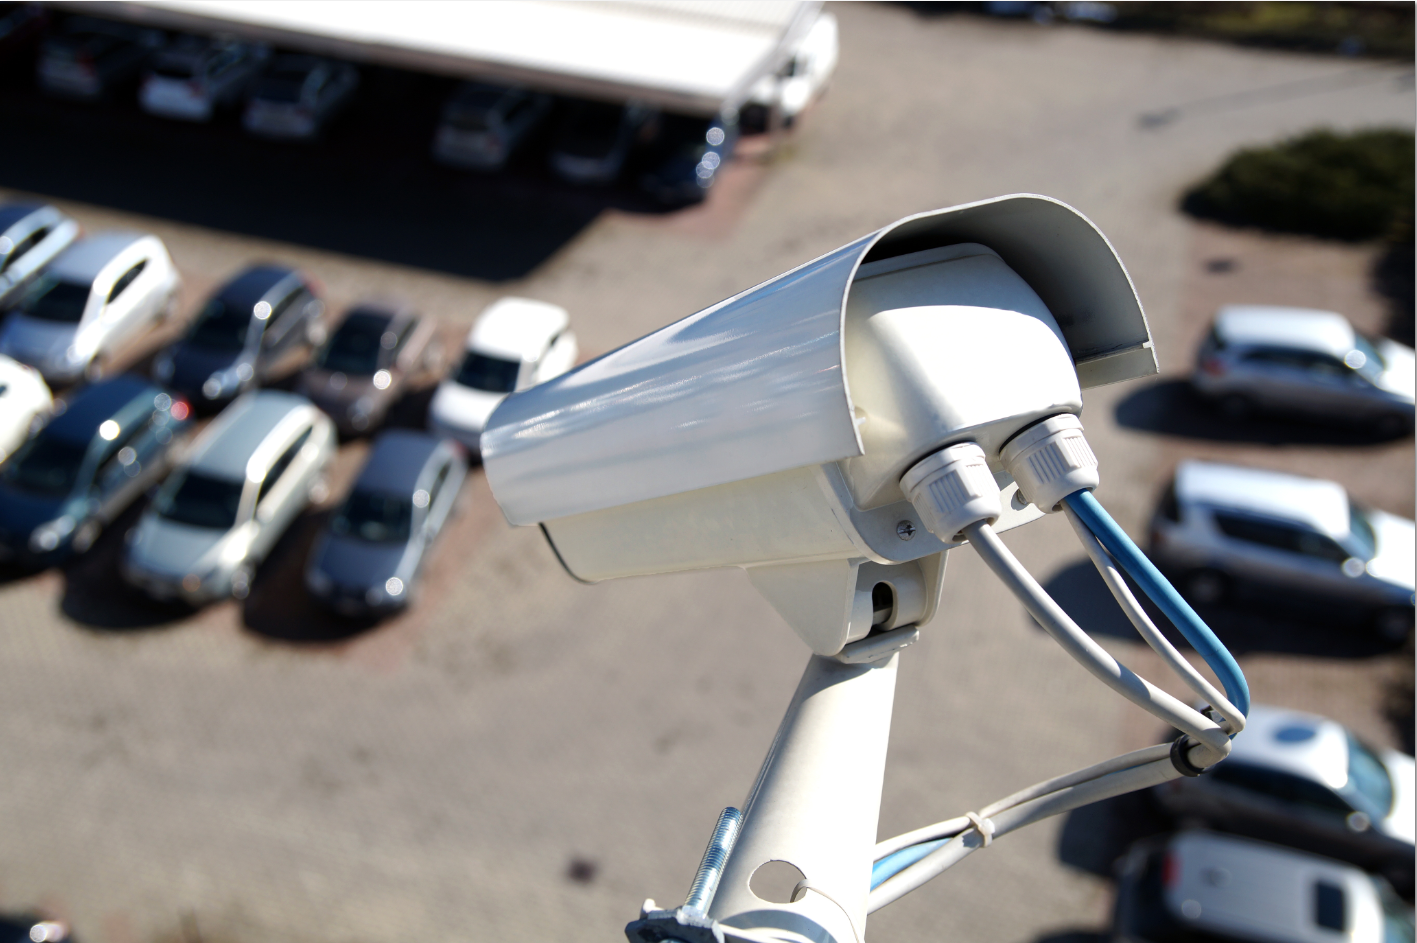 Industrial CCTV Camera Installation Service & Repair in Victorville